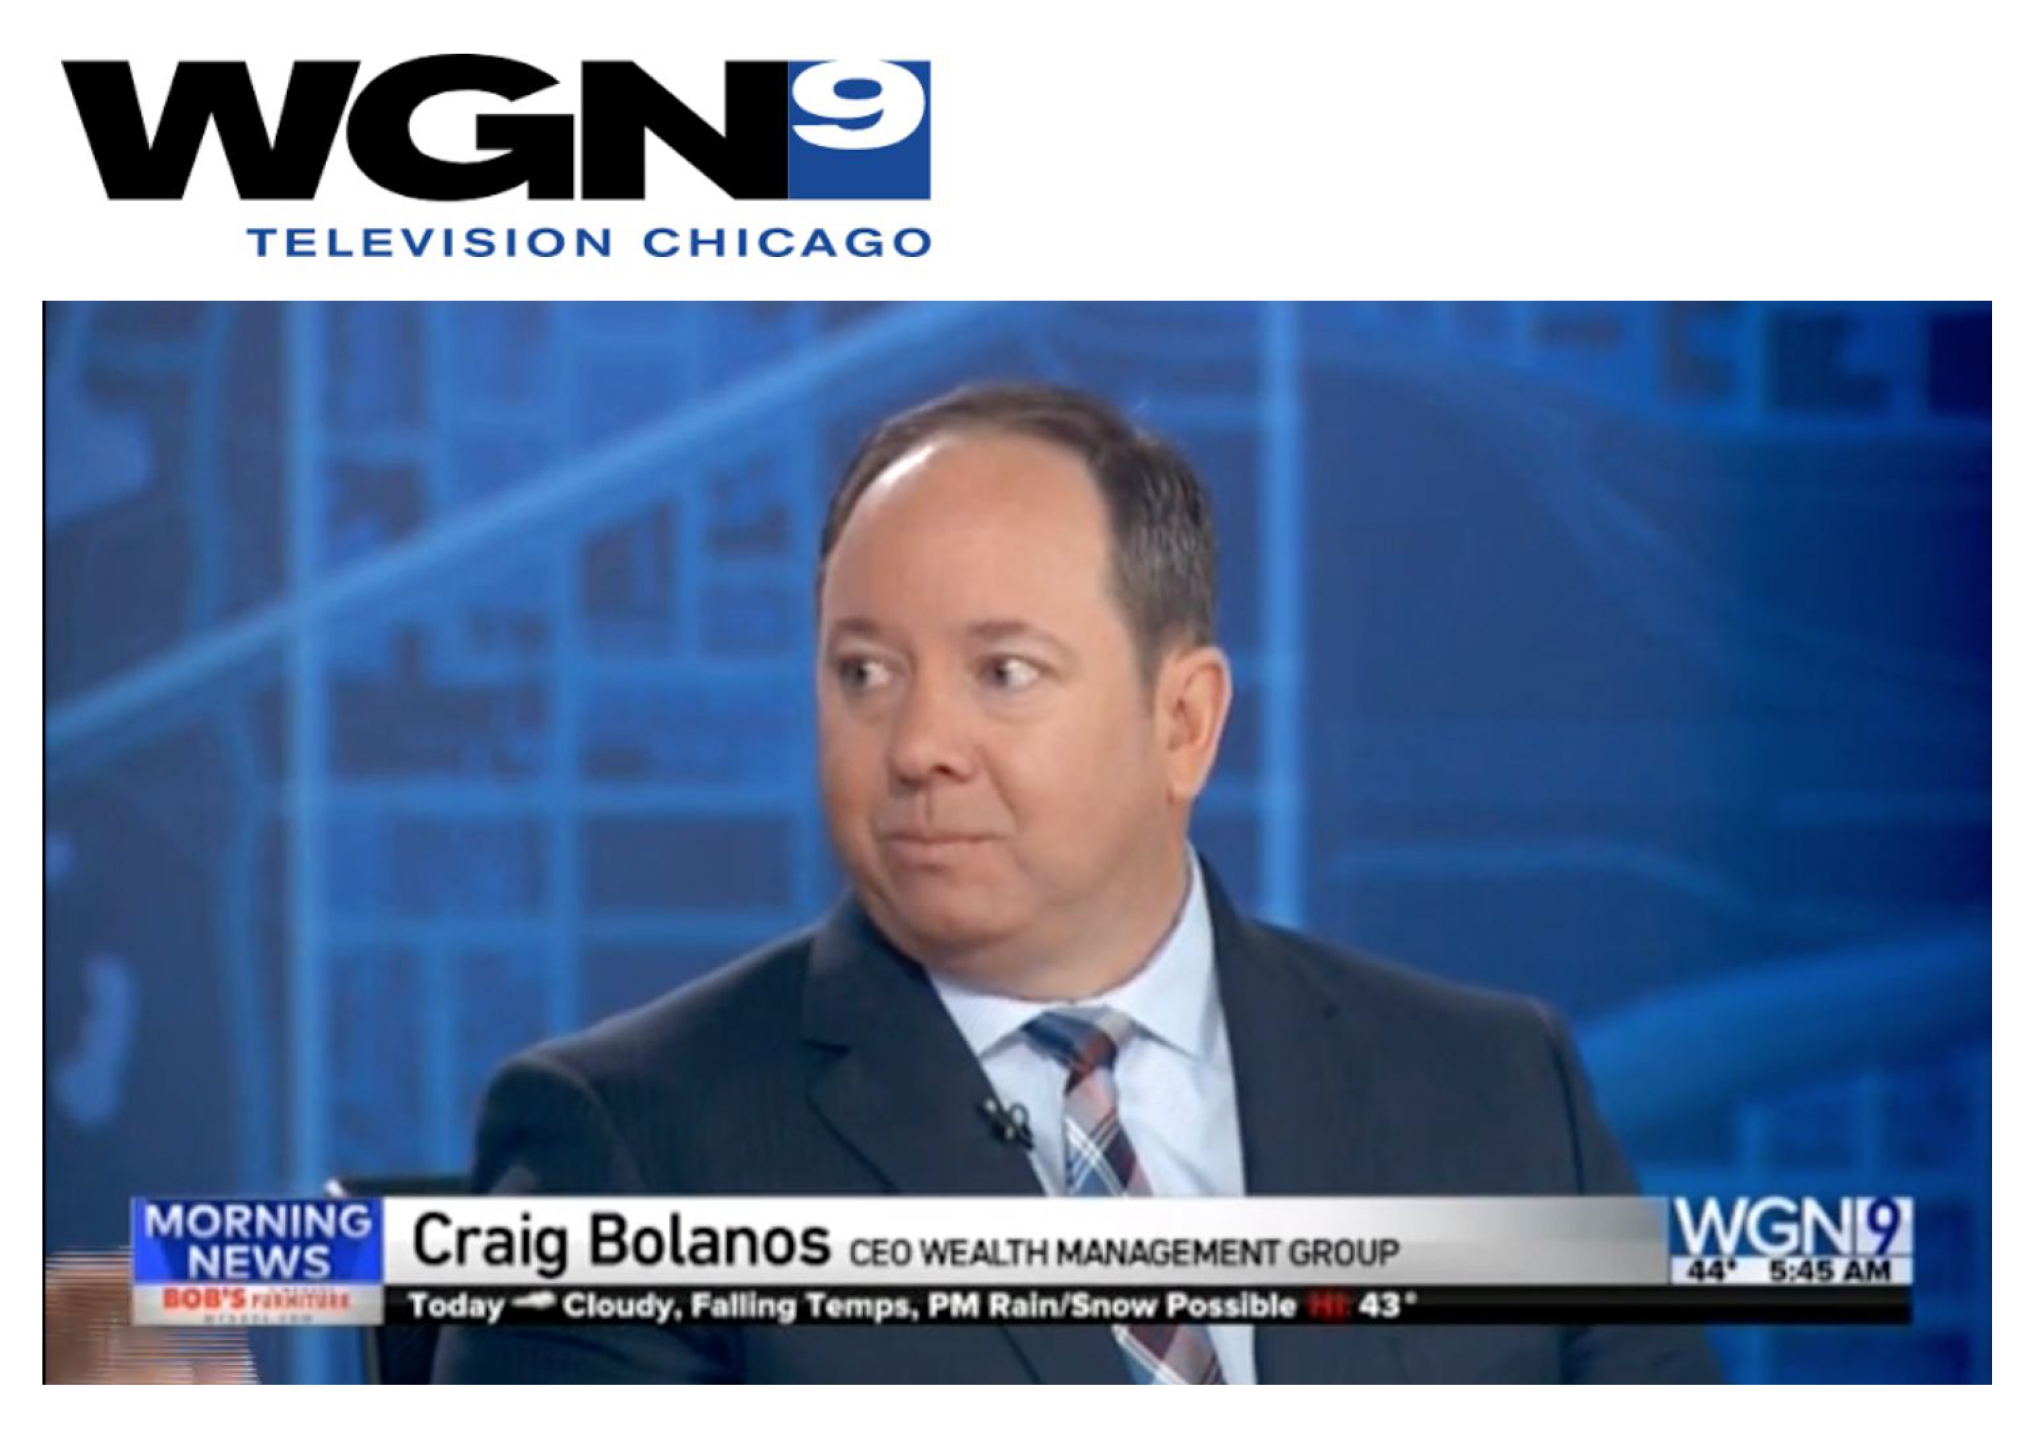 Craig Bolanos on WGN Channel 9 | Riding the Stock Roller Coaster – Dealing with Market Volatility